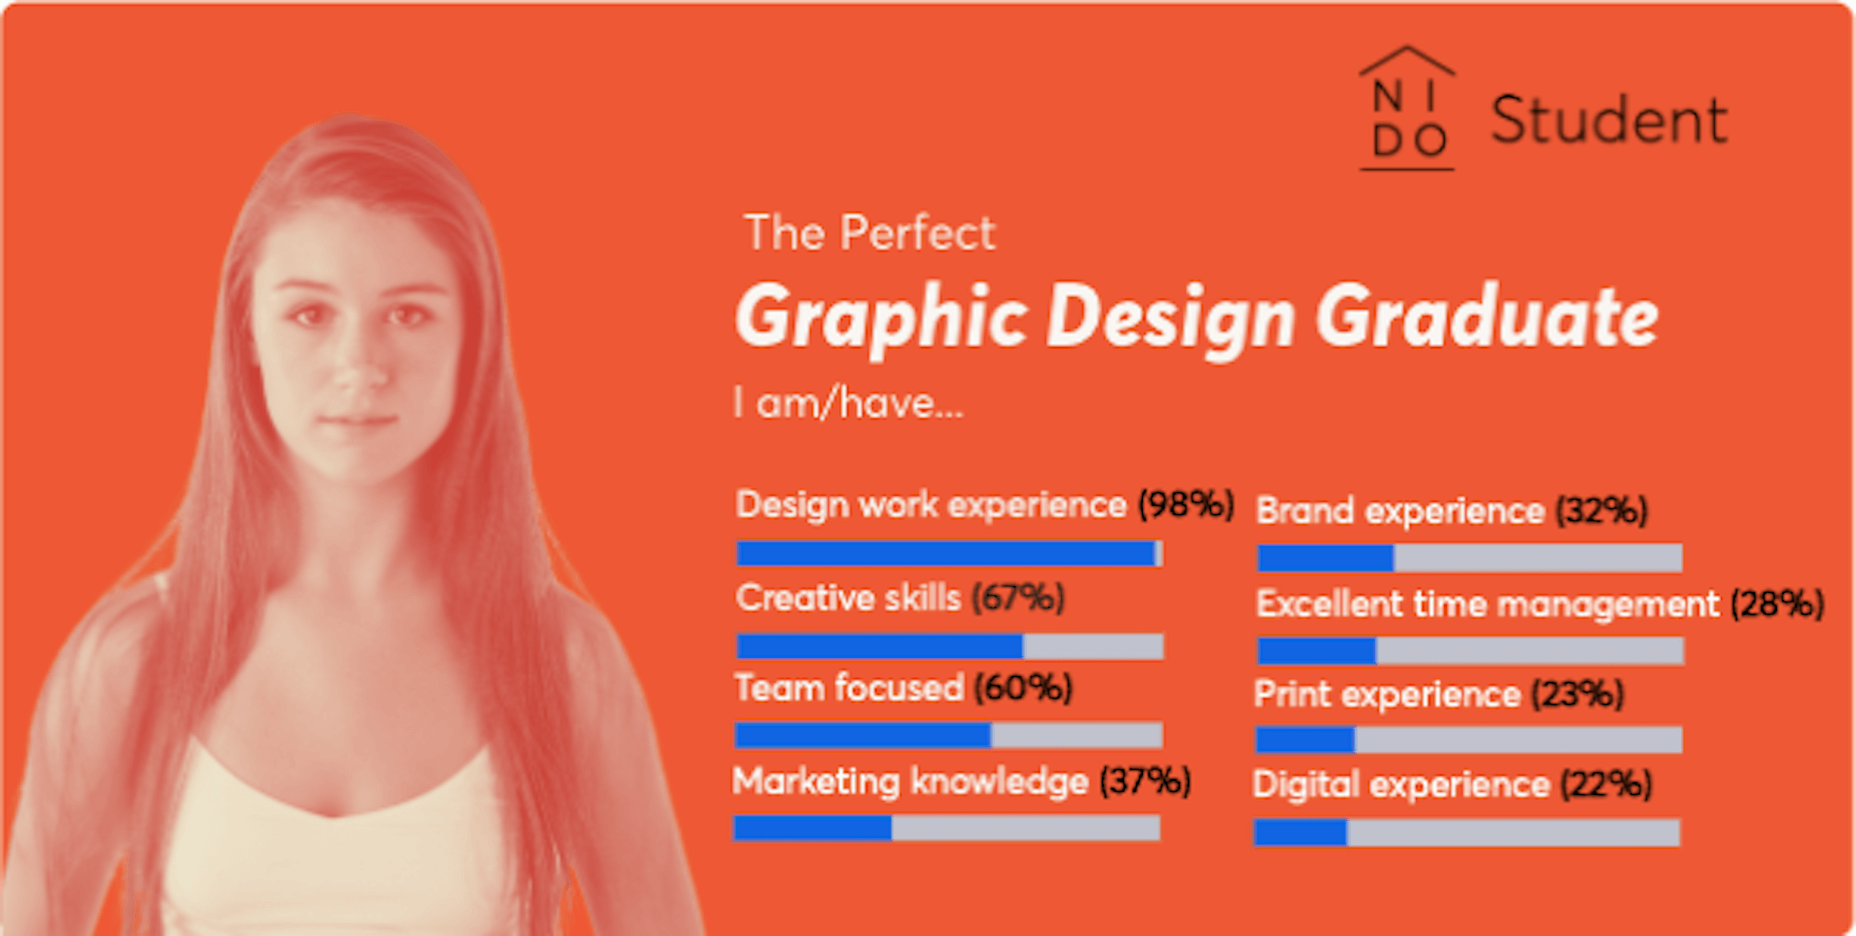 A survey done by NIDO Student found that employers want to find the following keywords in designer resumes: design work experience, creative skills, team focused, marketing knowledge, brand experience, excellent time management, print experience, digital experience